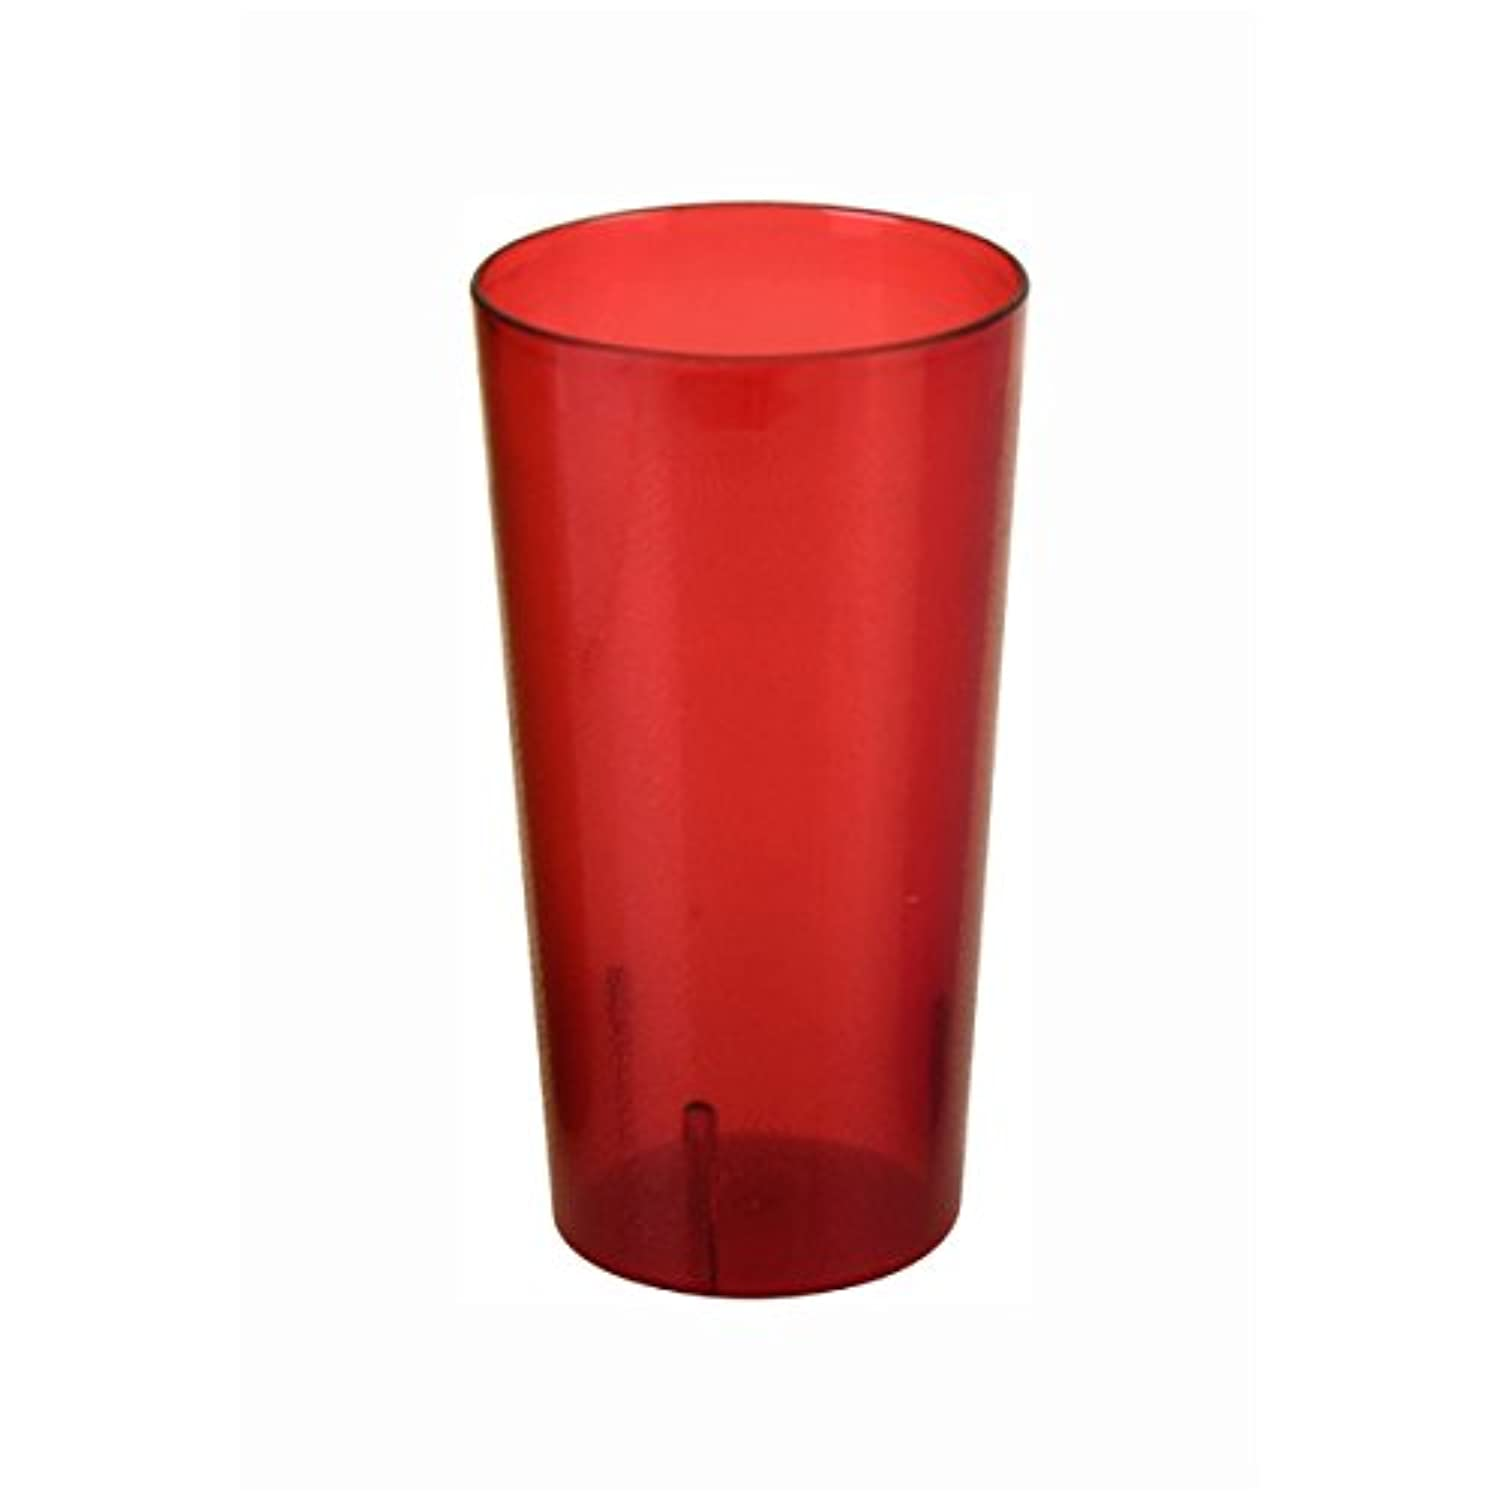 Plastic Tumblers, Shatter Proof Cups, For Restaurant, Lunchroom, Cafeteria, Bar - Pack of 12 (24 oz, Red)